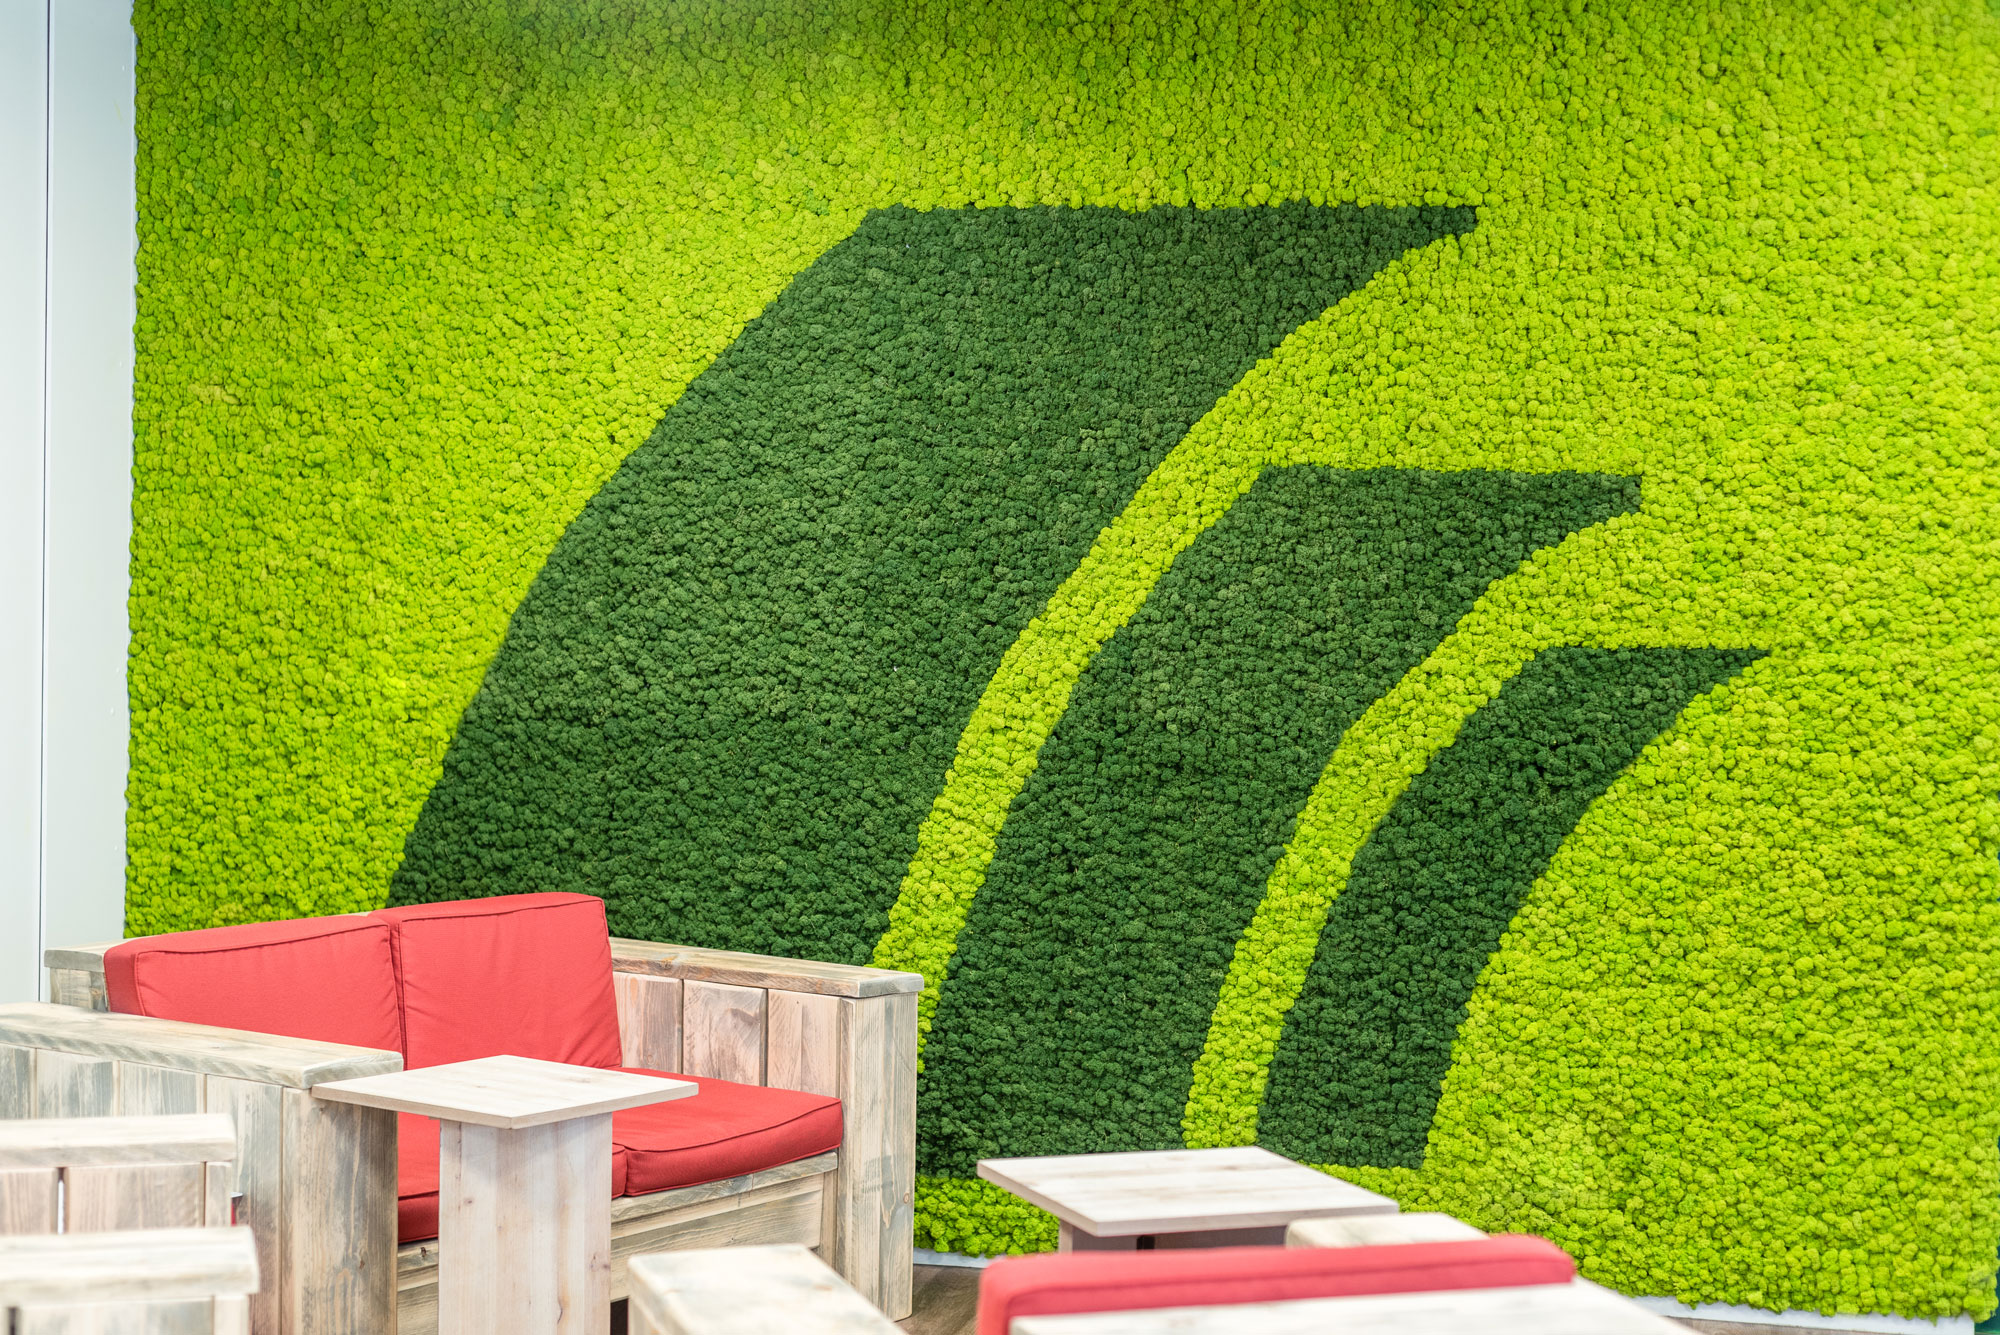 Postbank logo in moss wall of reindeer moss by Freund GmbH